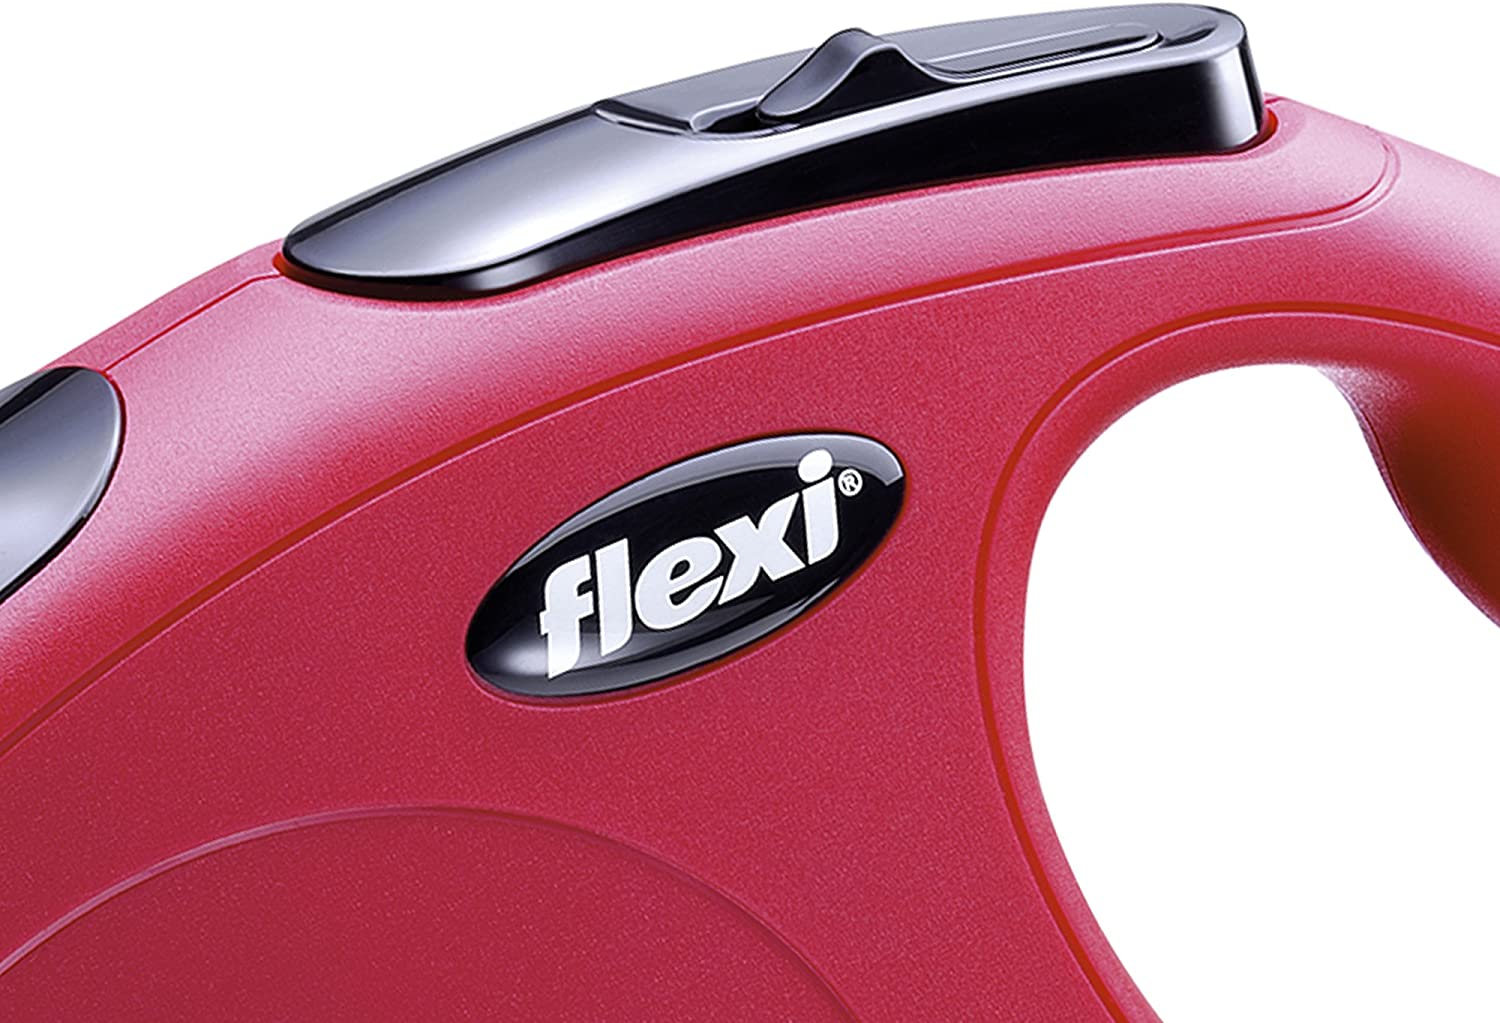 FLEXI New Classic Retractable Dog Leash Model Number: CL00T3.250.R 10 ft Tape Red Extra Small